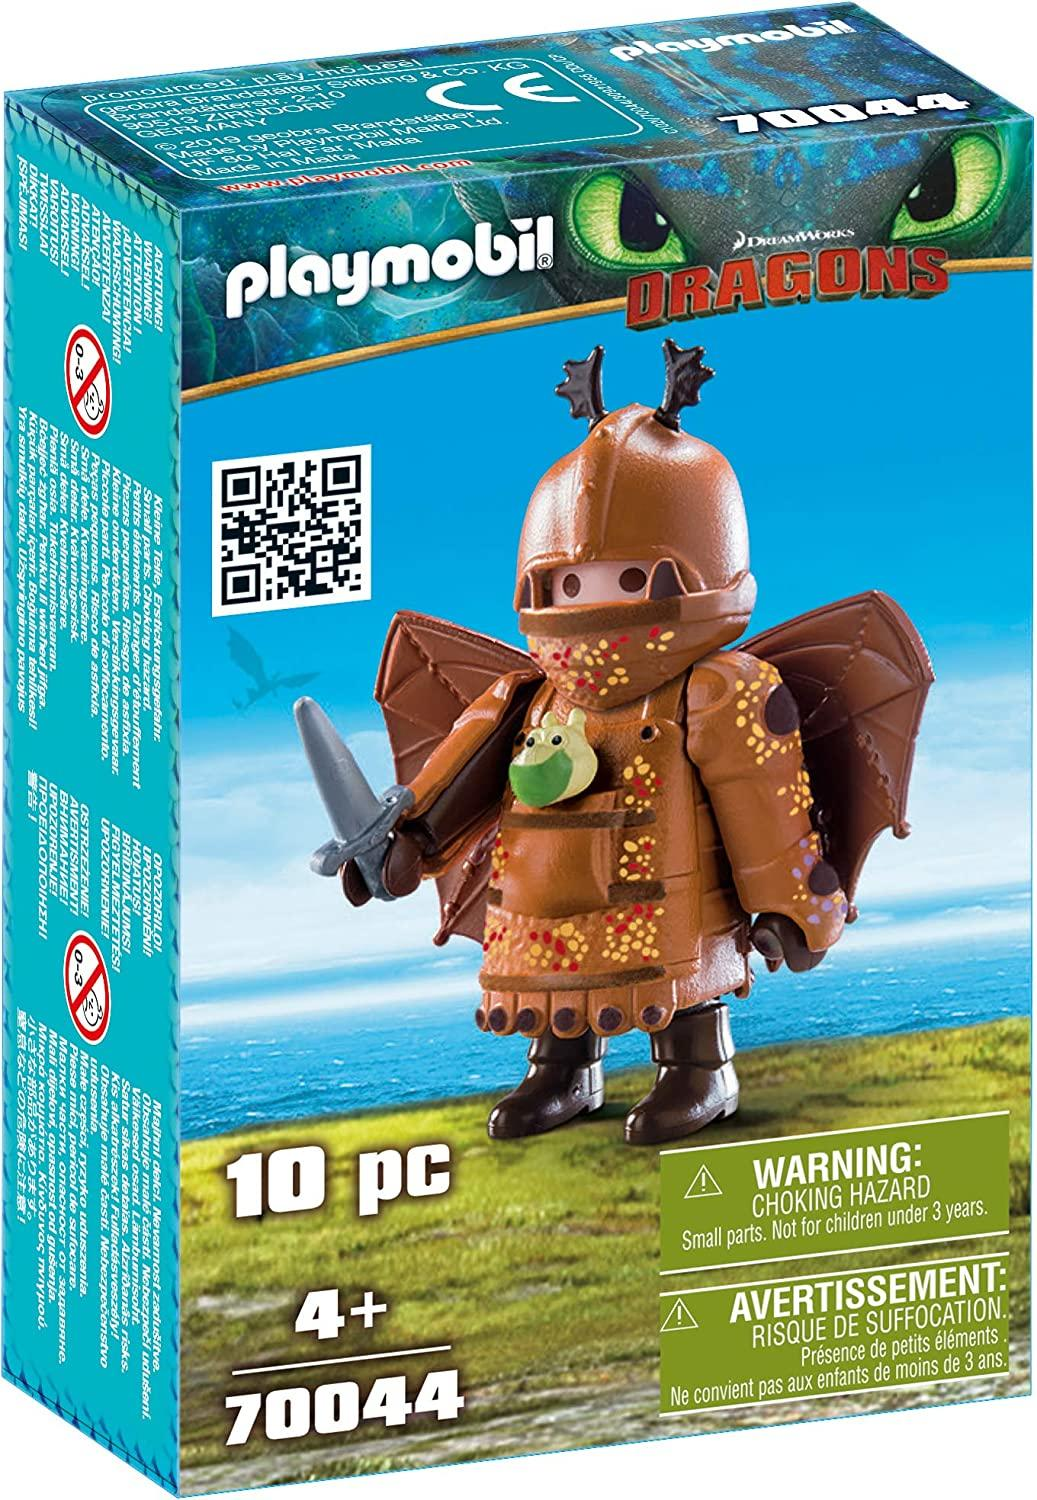 Playmobil 70044 Fishlegs With Flightsuit Toymaster Ballina